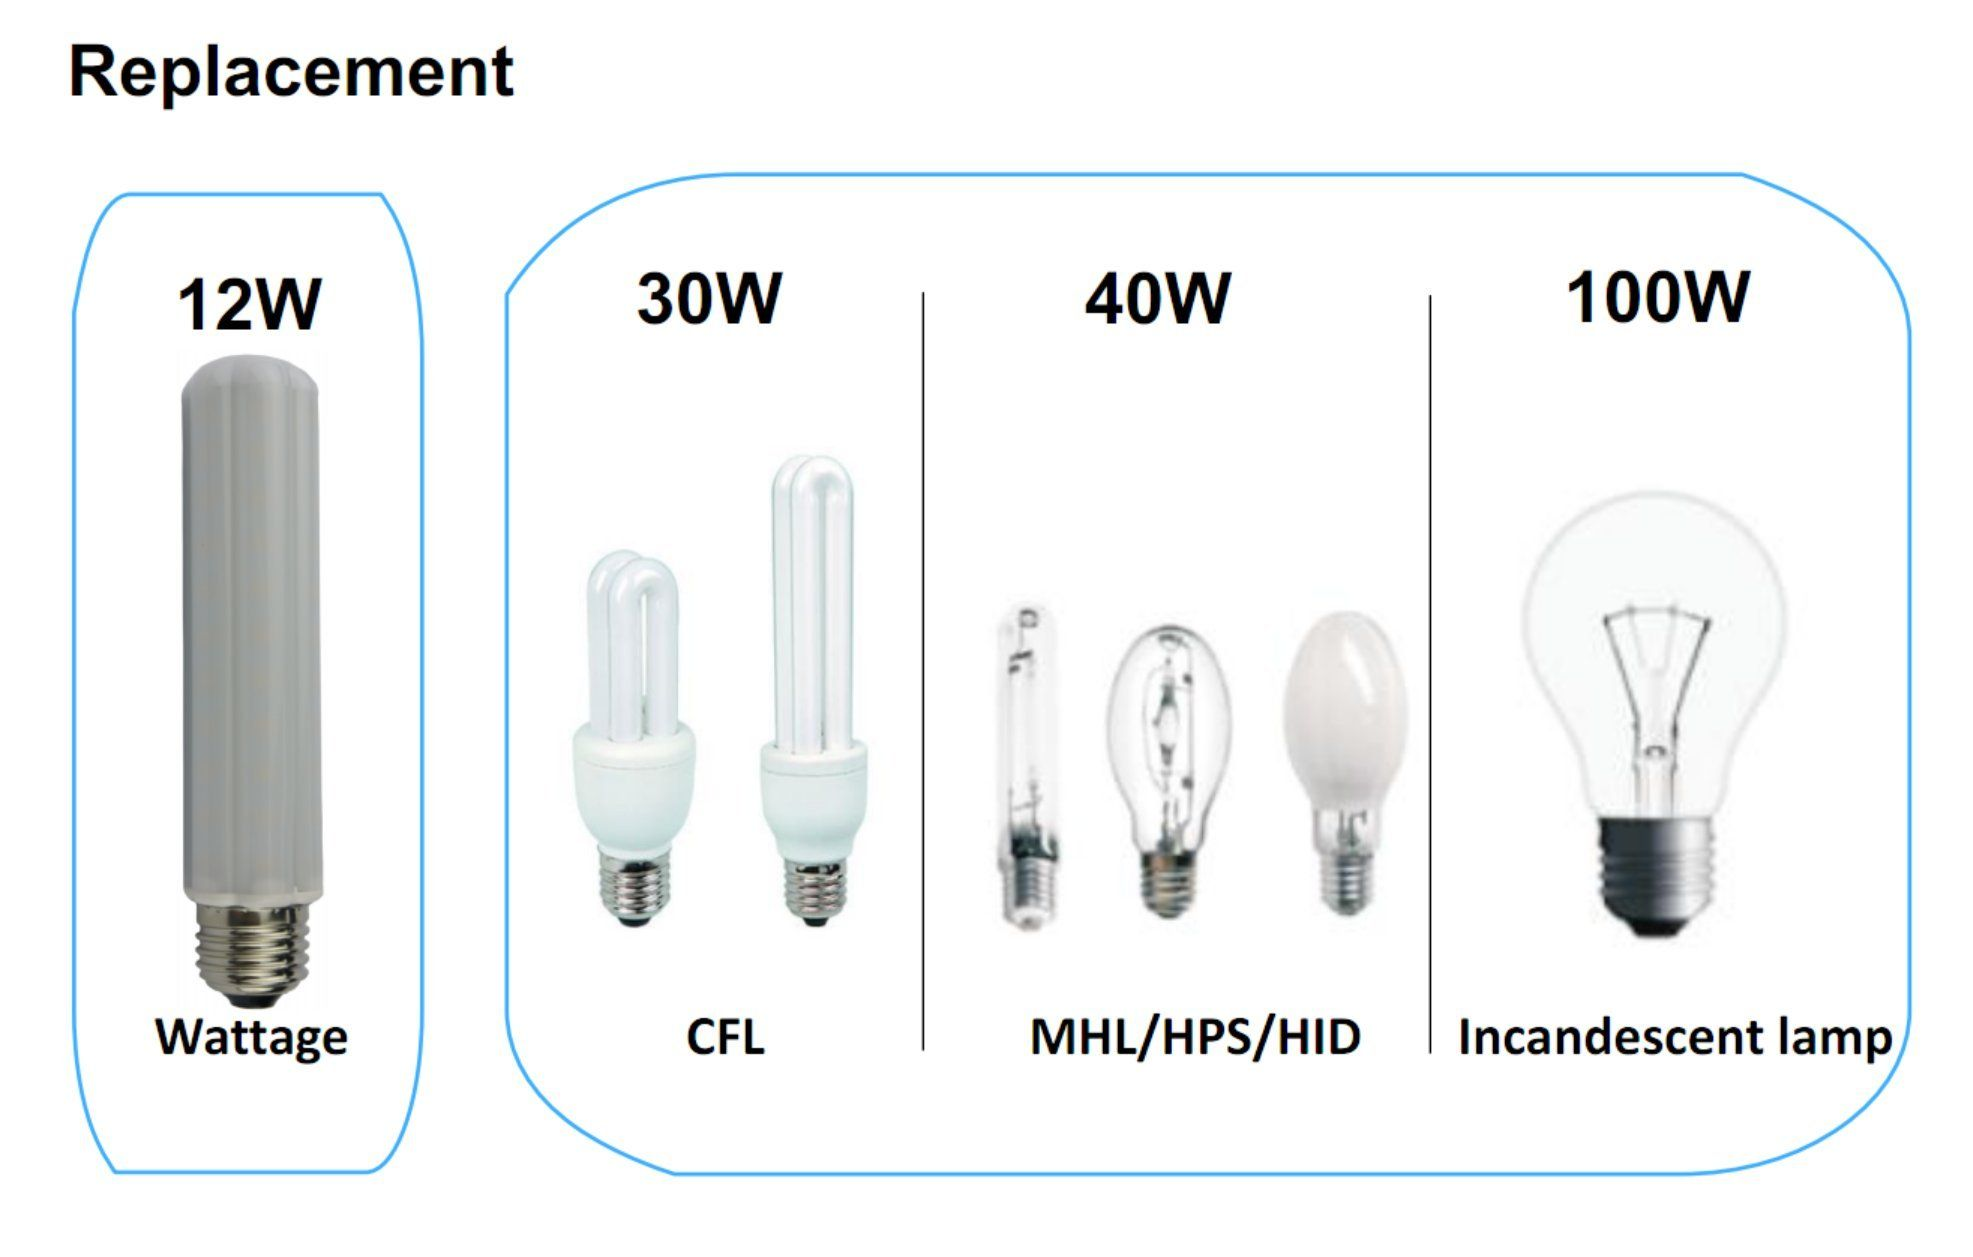 Massimum 12w Led Corn Bulb40w Metal Halide Hps Hid Equivalent 1300 Lumen E26 Medium Mogul Screw Basenatural White 4000k Frosted Milky Light Bulb Bulb Beams